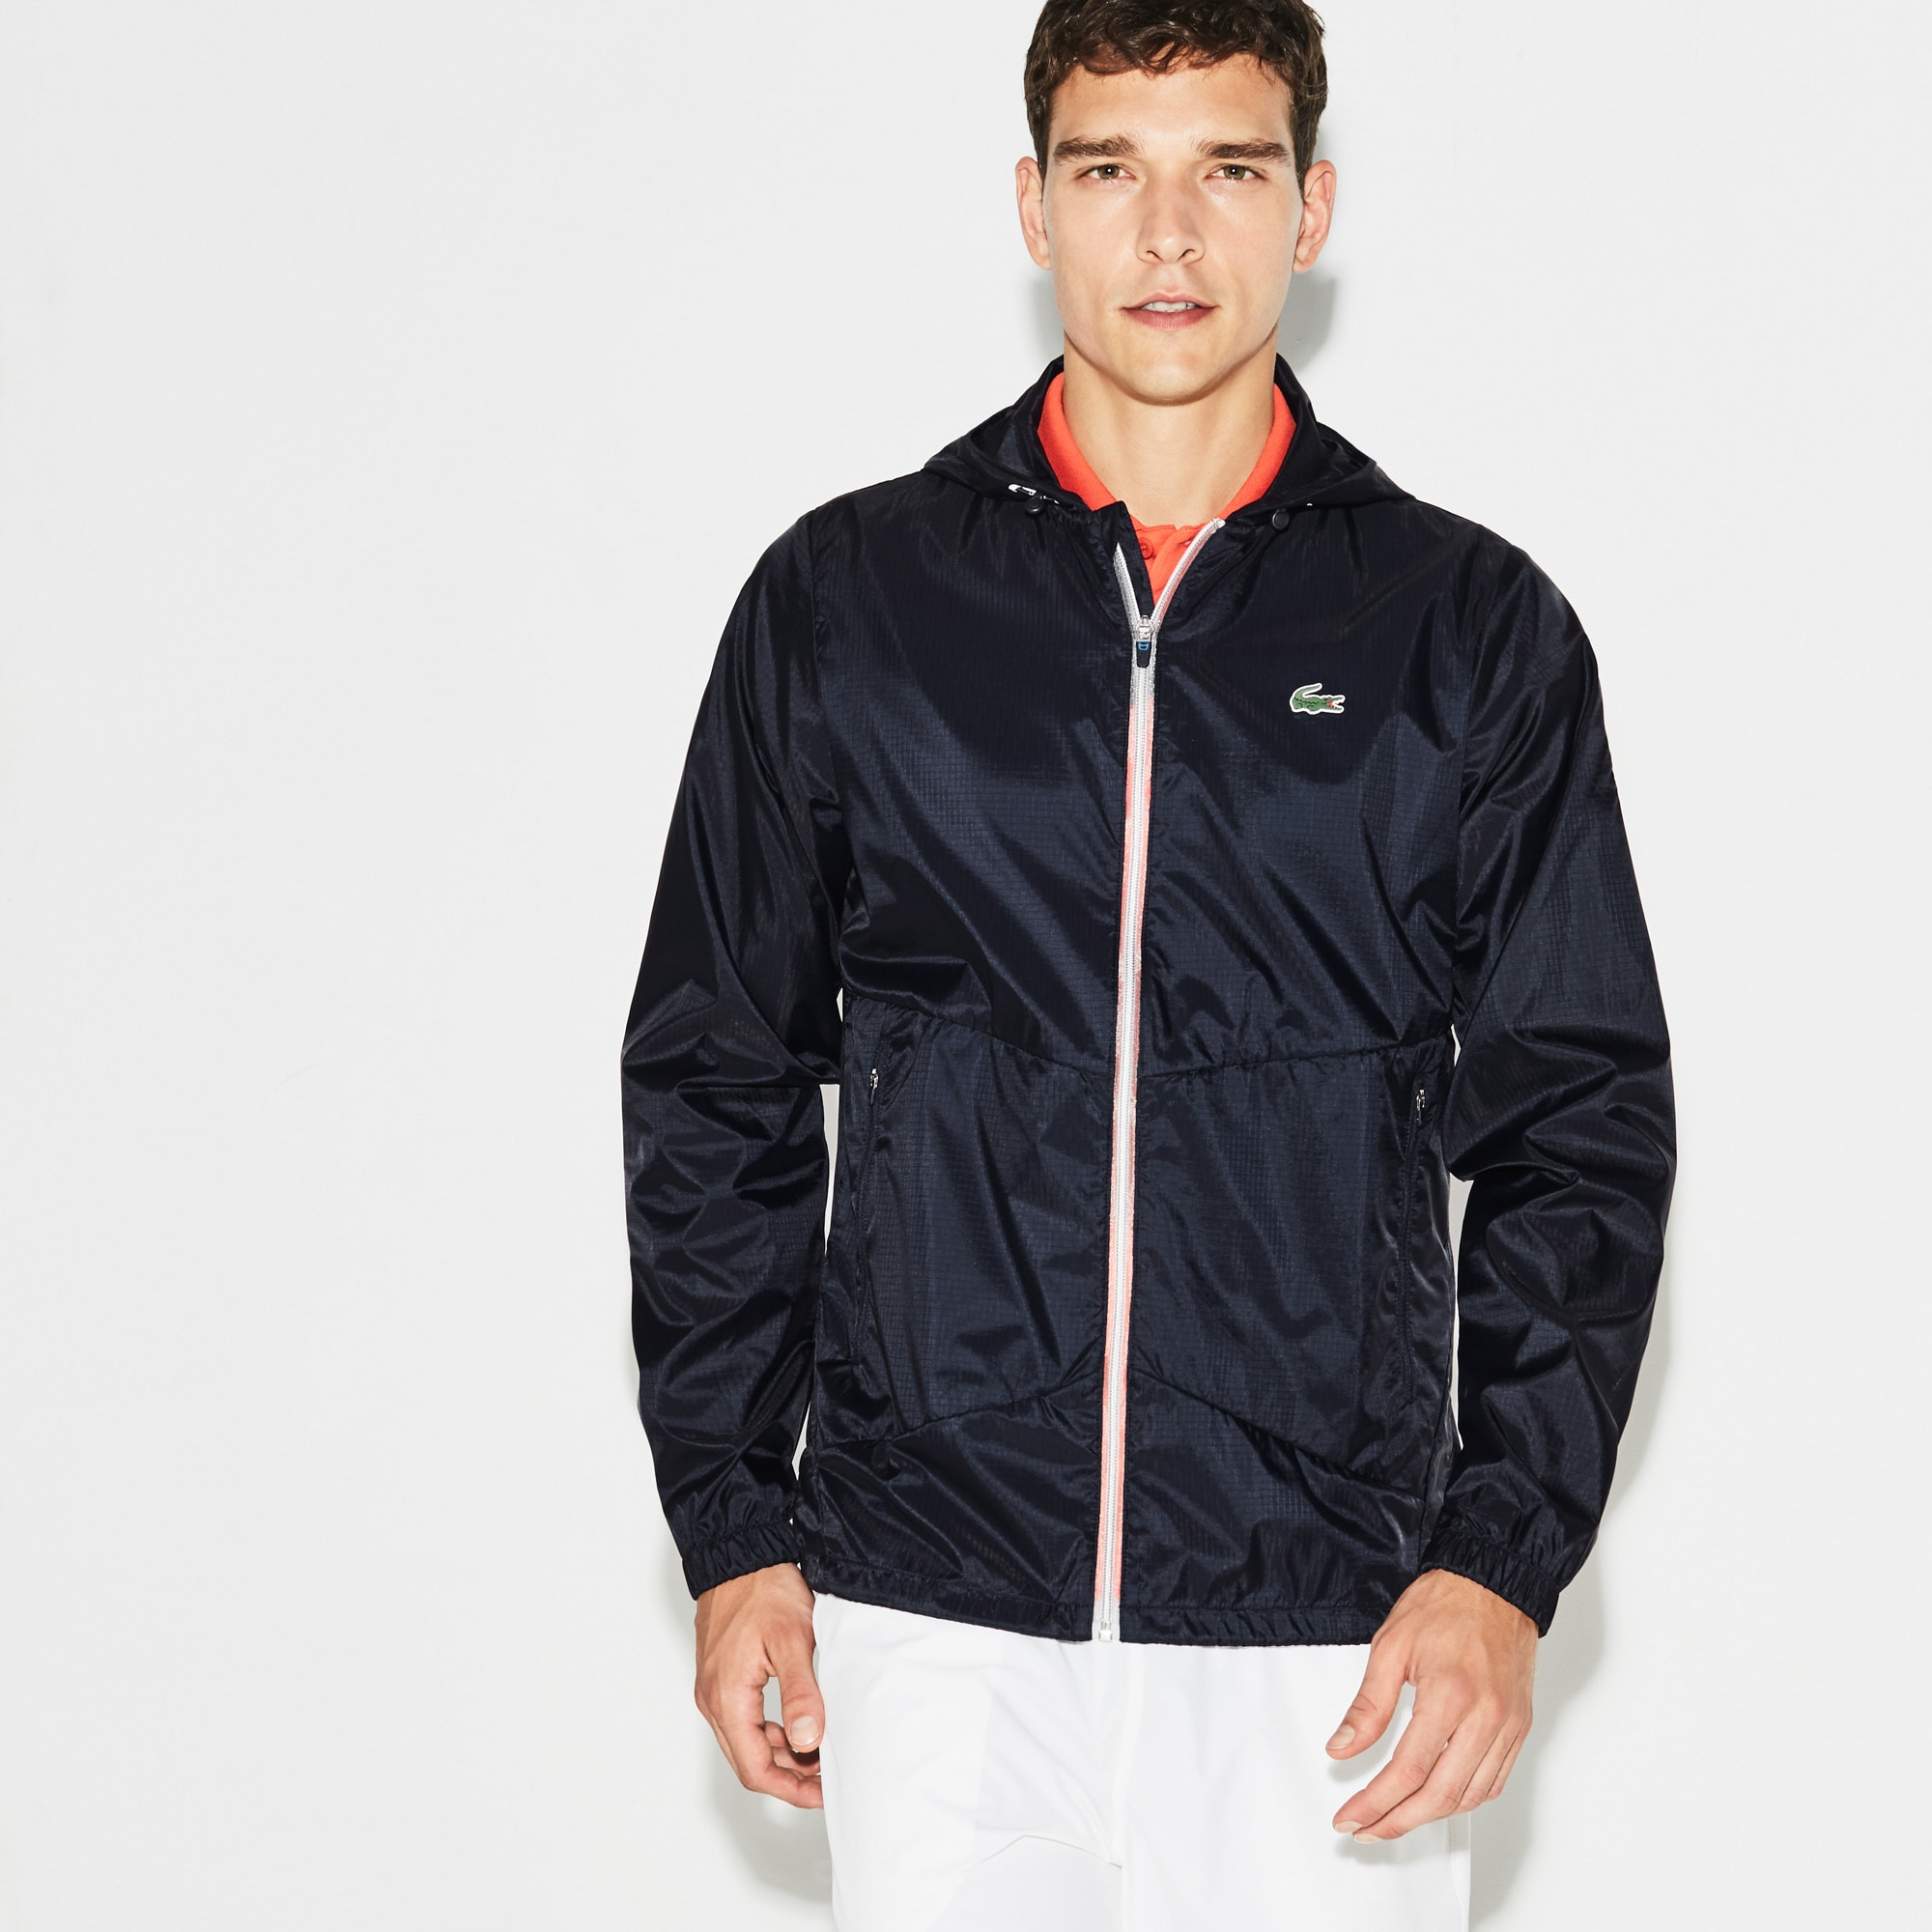 Veste Lacoste Collection pour Novak Djokovic - Édition Terre Battue Exclusive